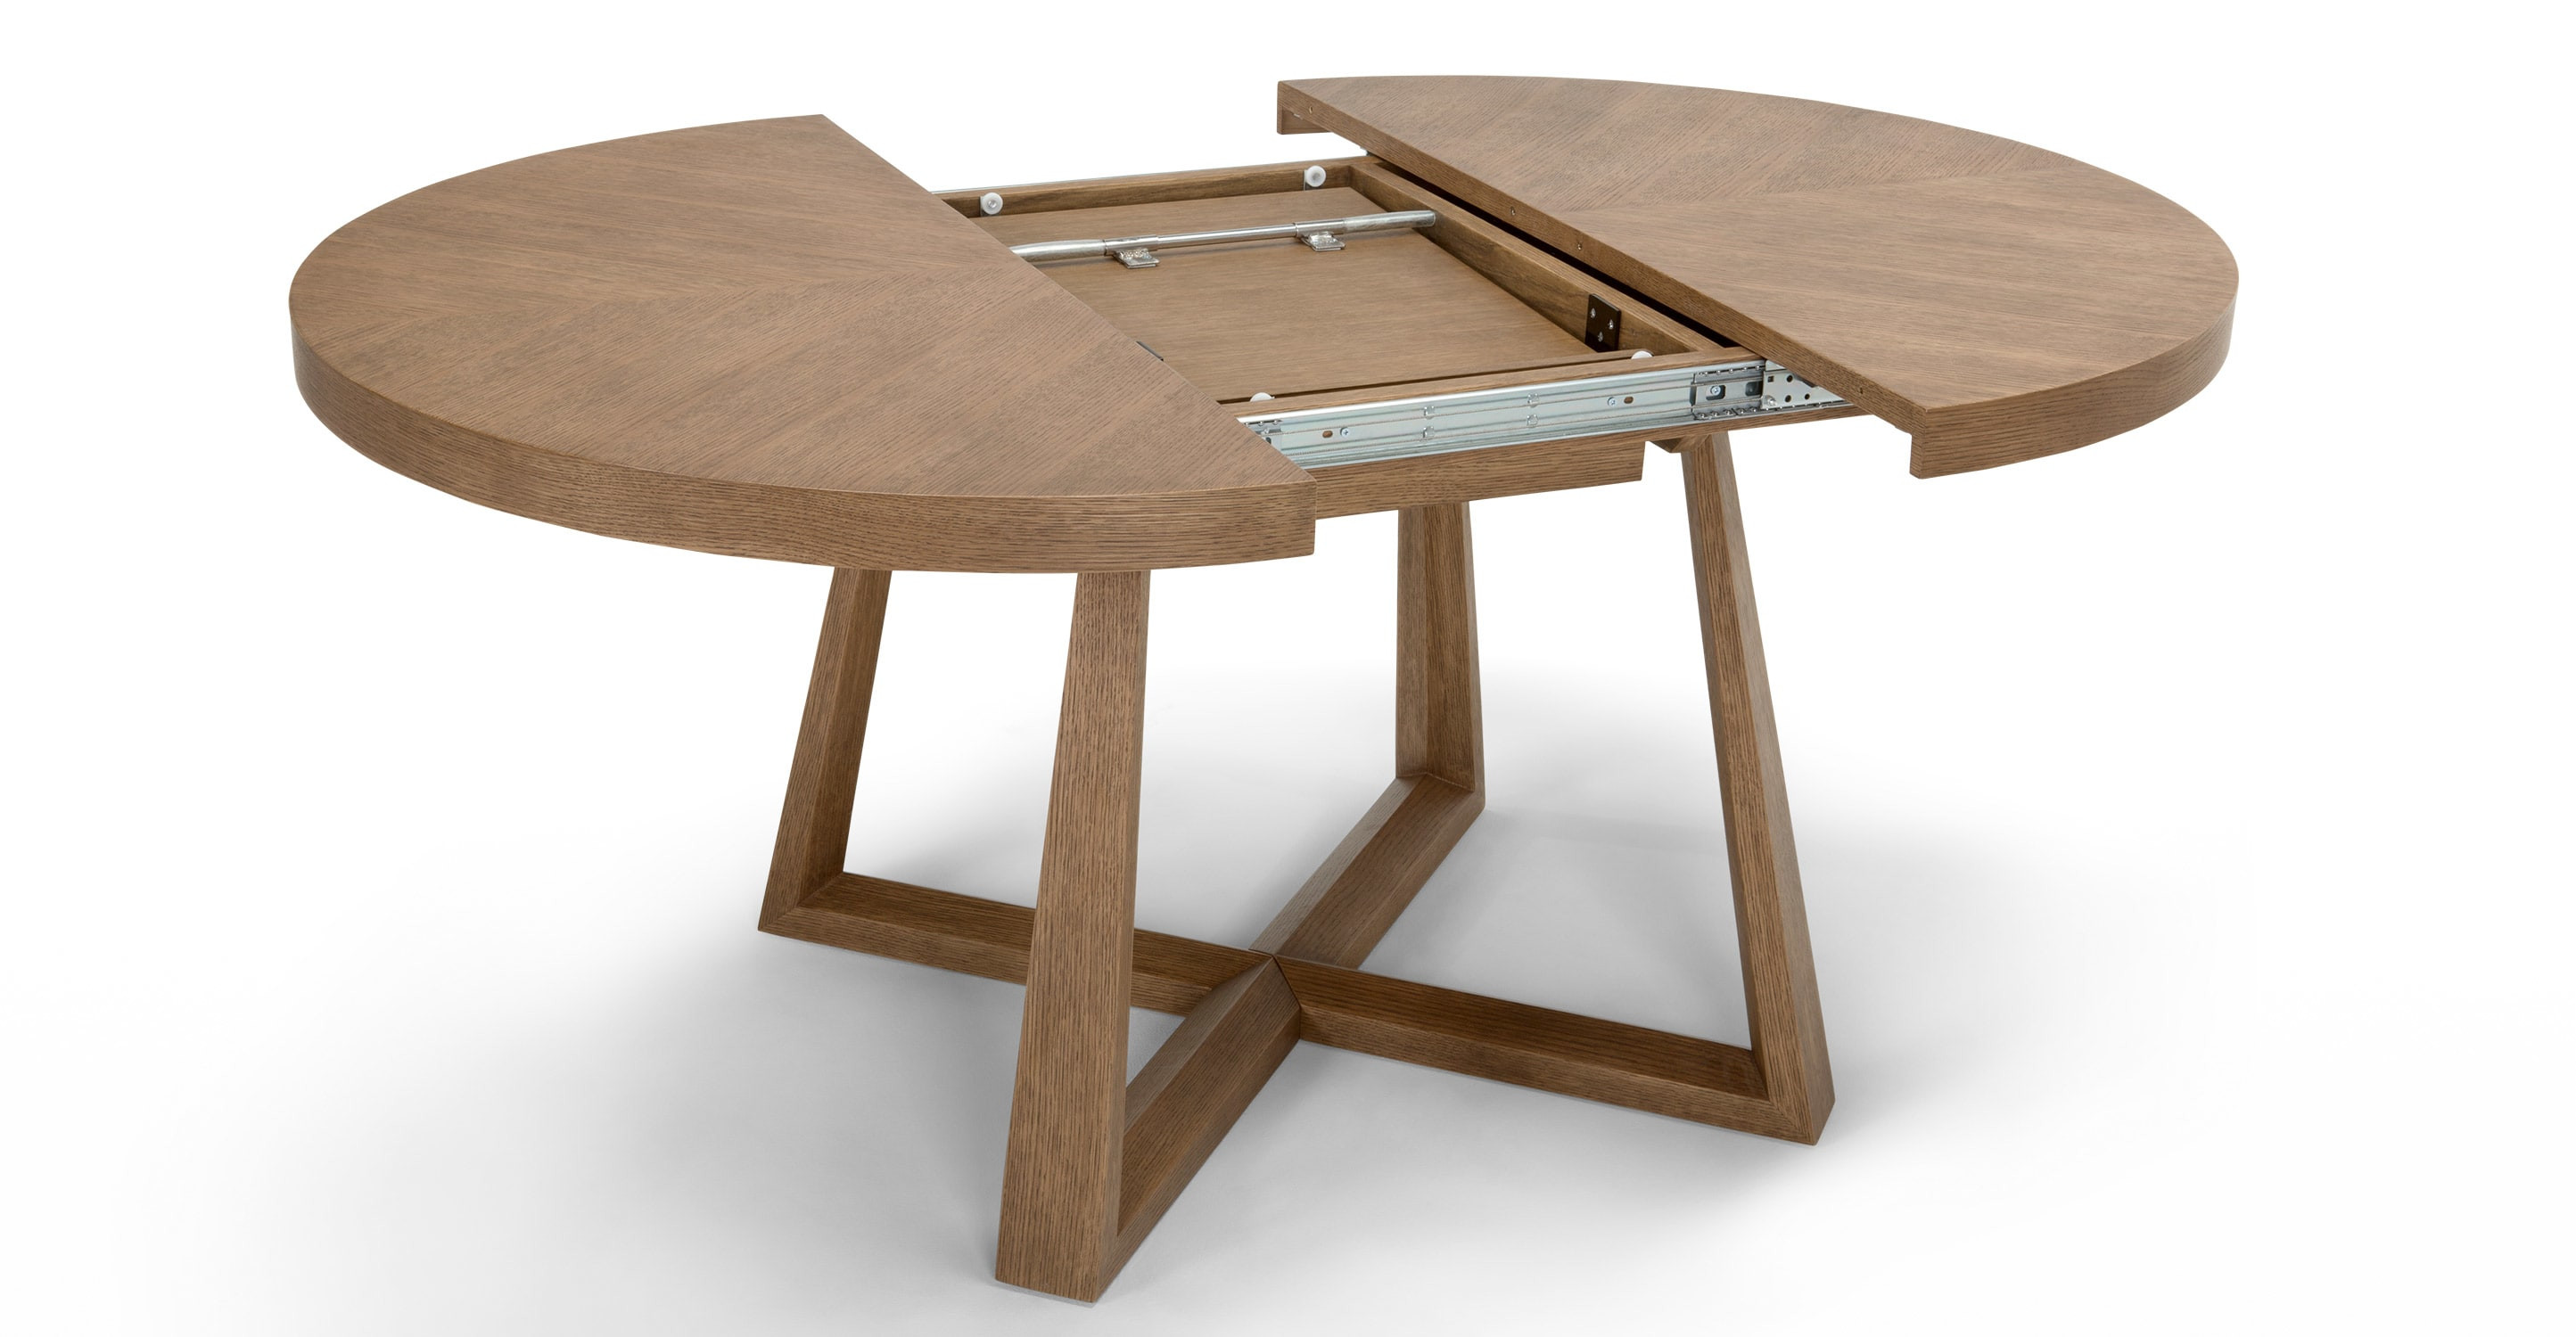 Best ideas about Extension Dining Table . Save or Pin Belgrave Extending Dining Table Dark Stained Oak Now.